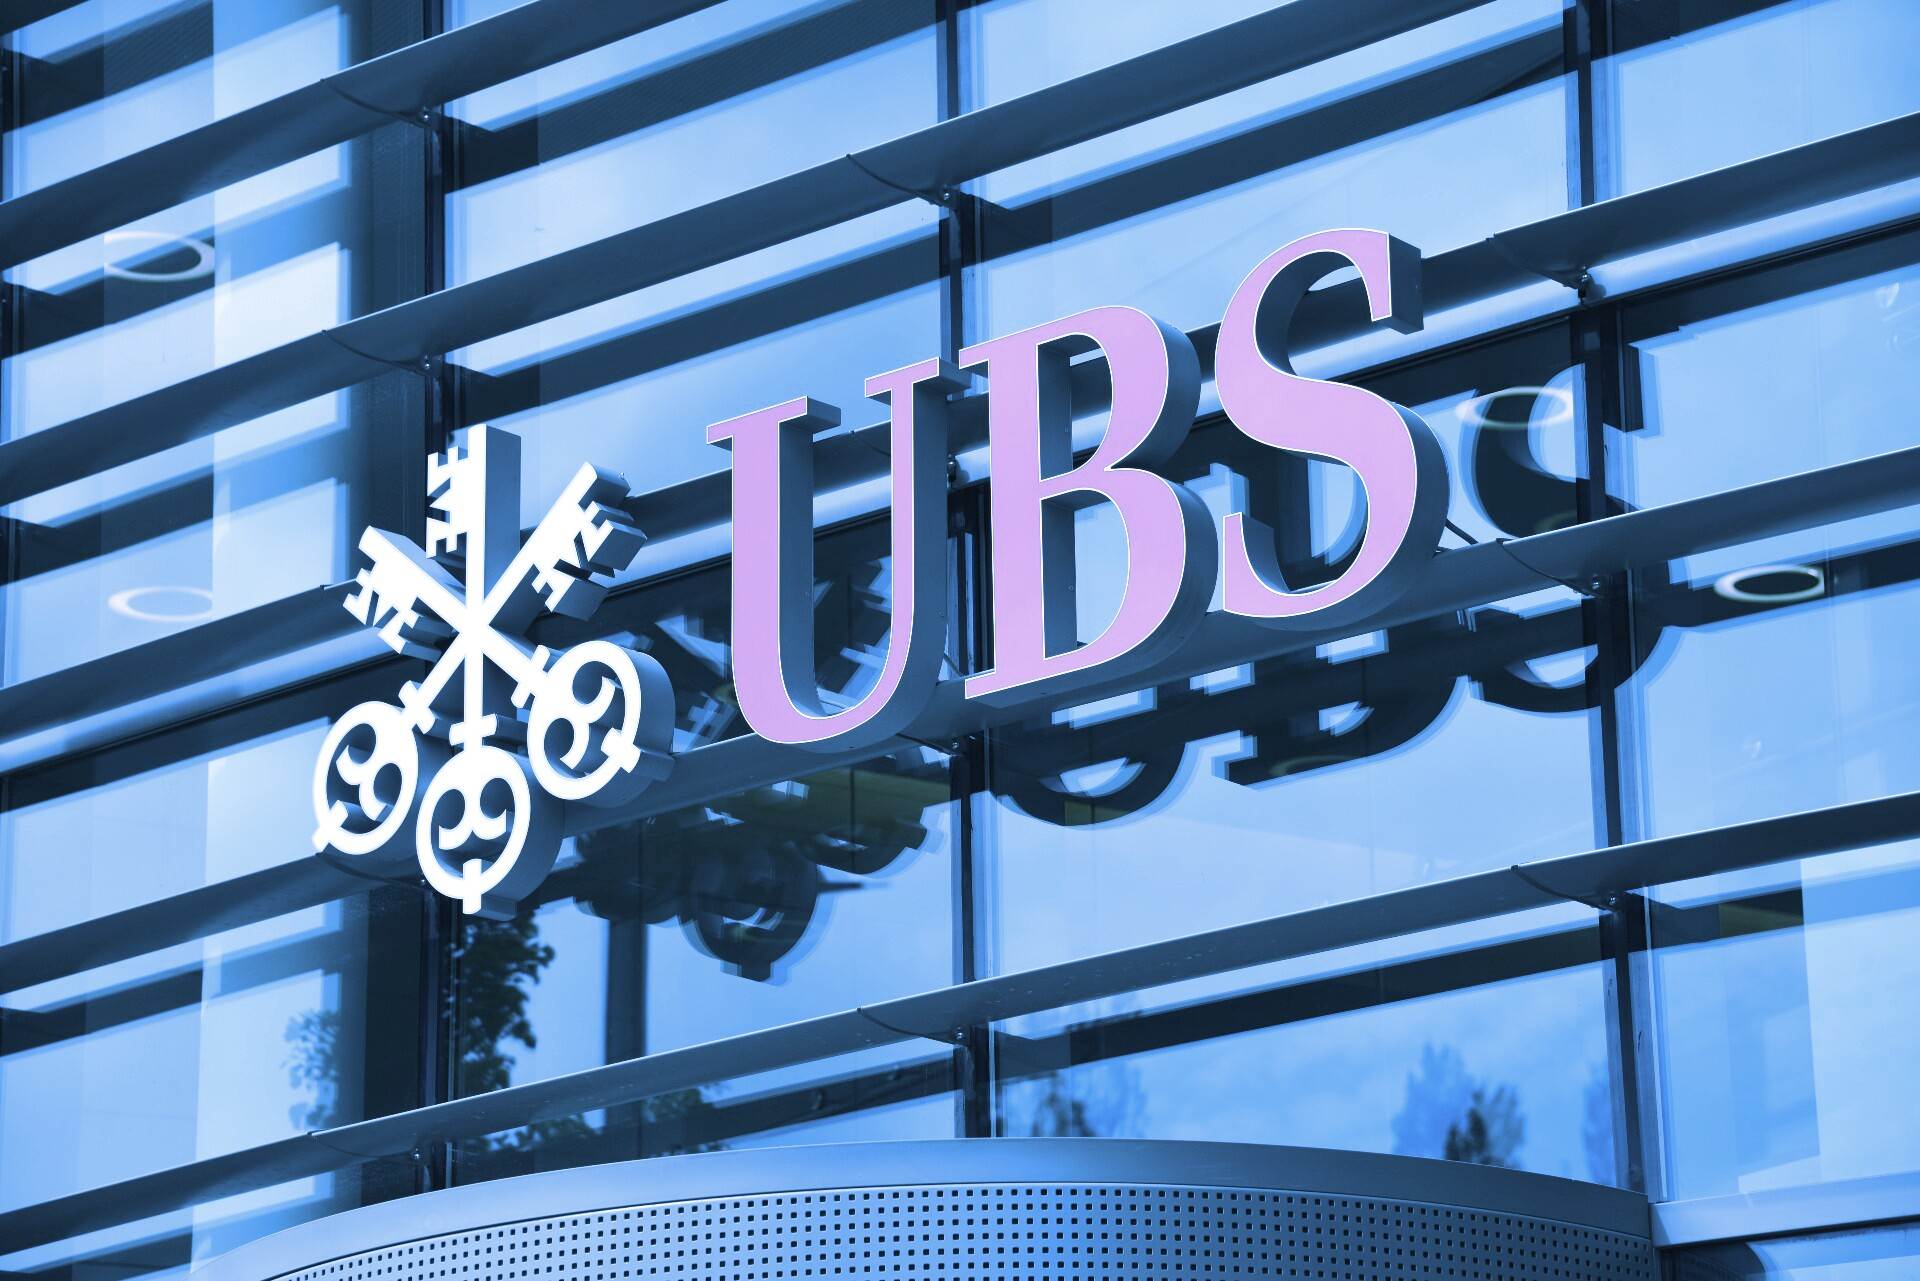 UBS CEO: Crypto 'An Untested Asset Category'